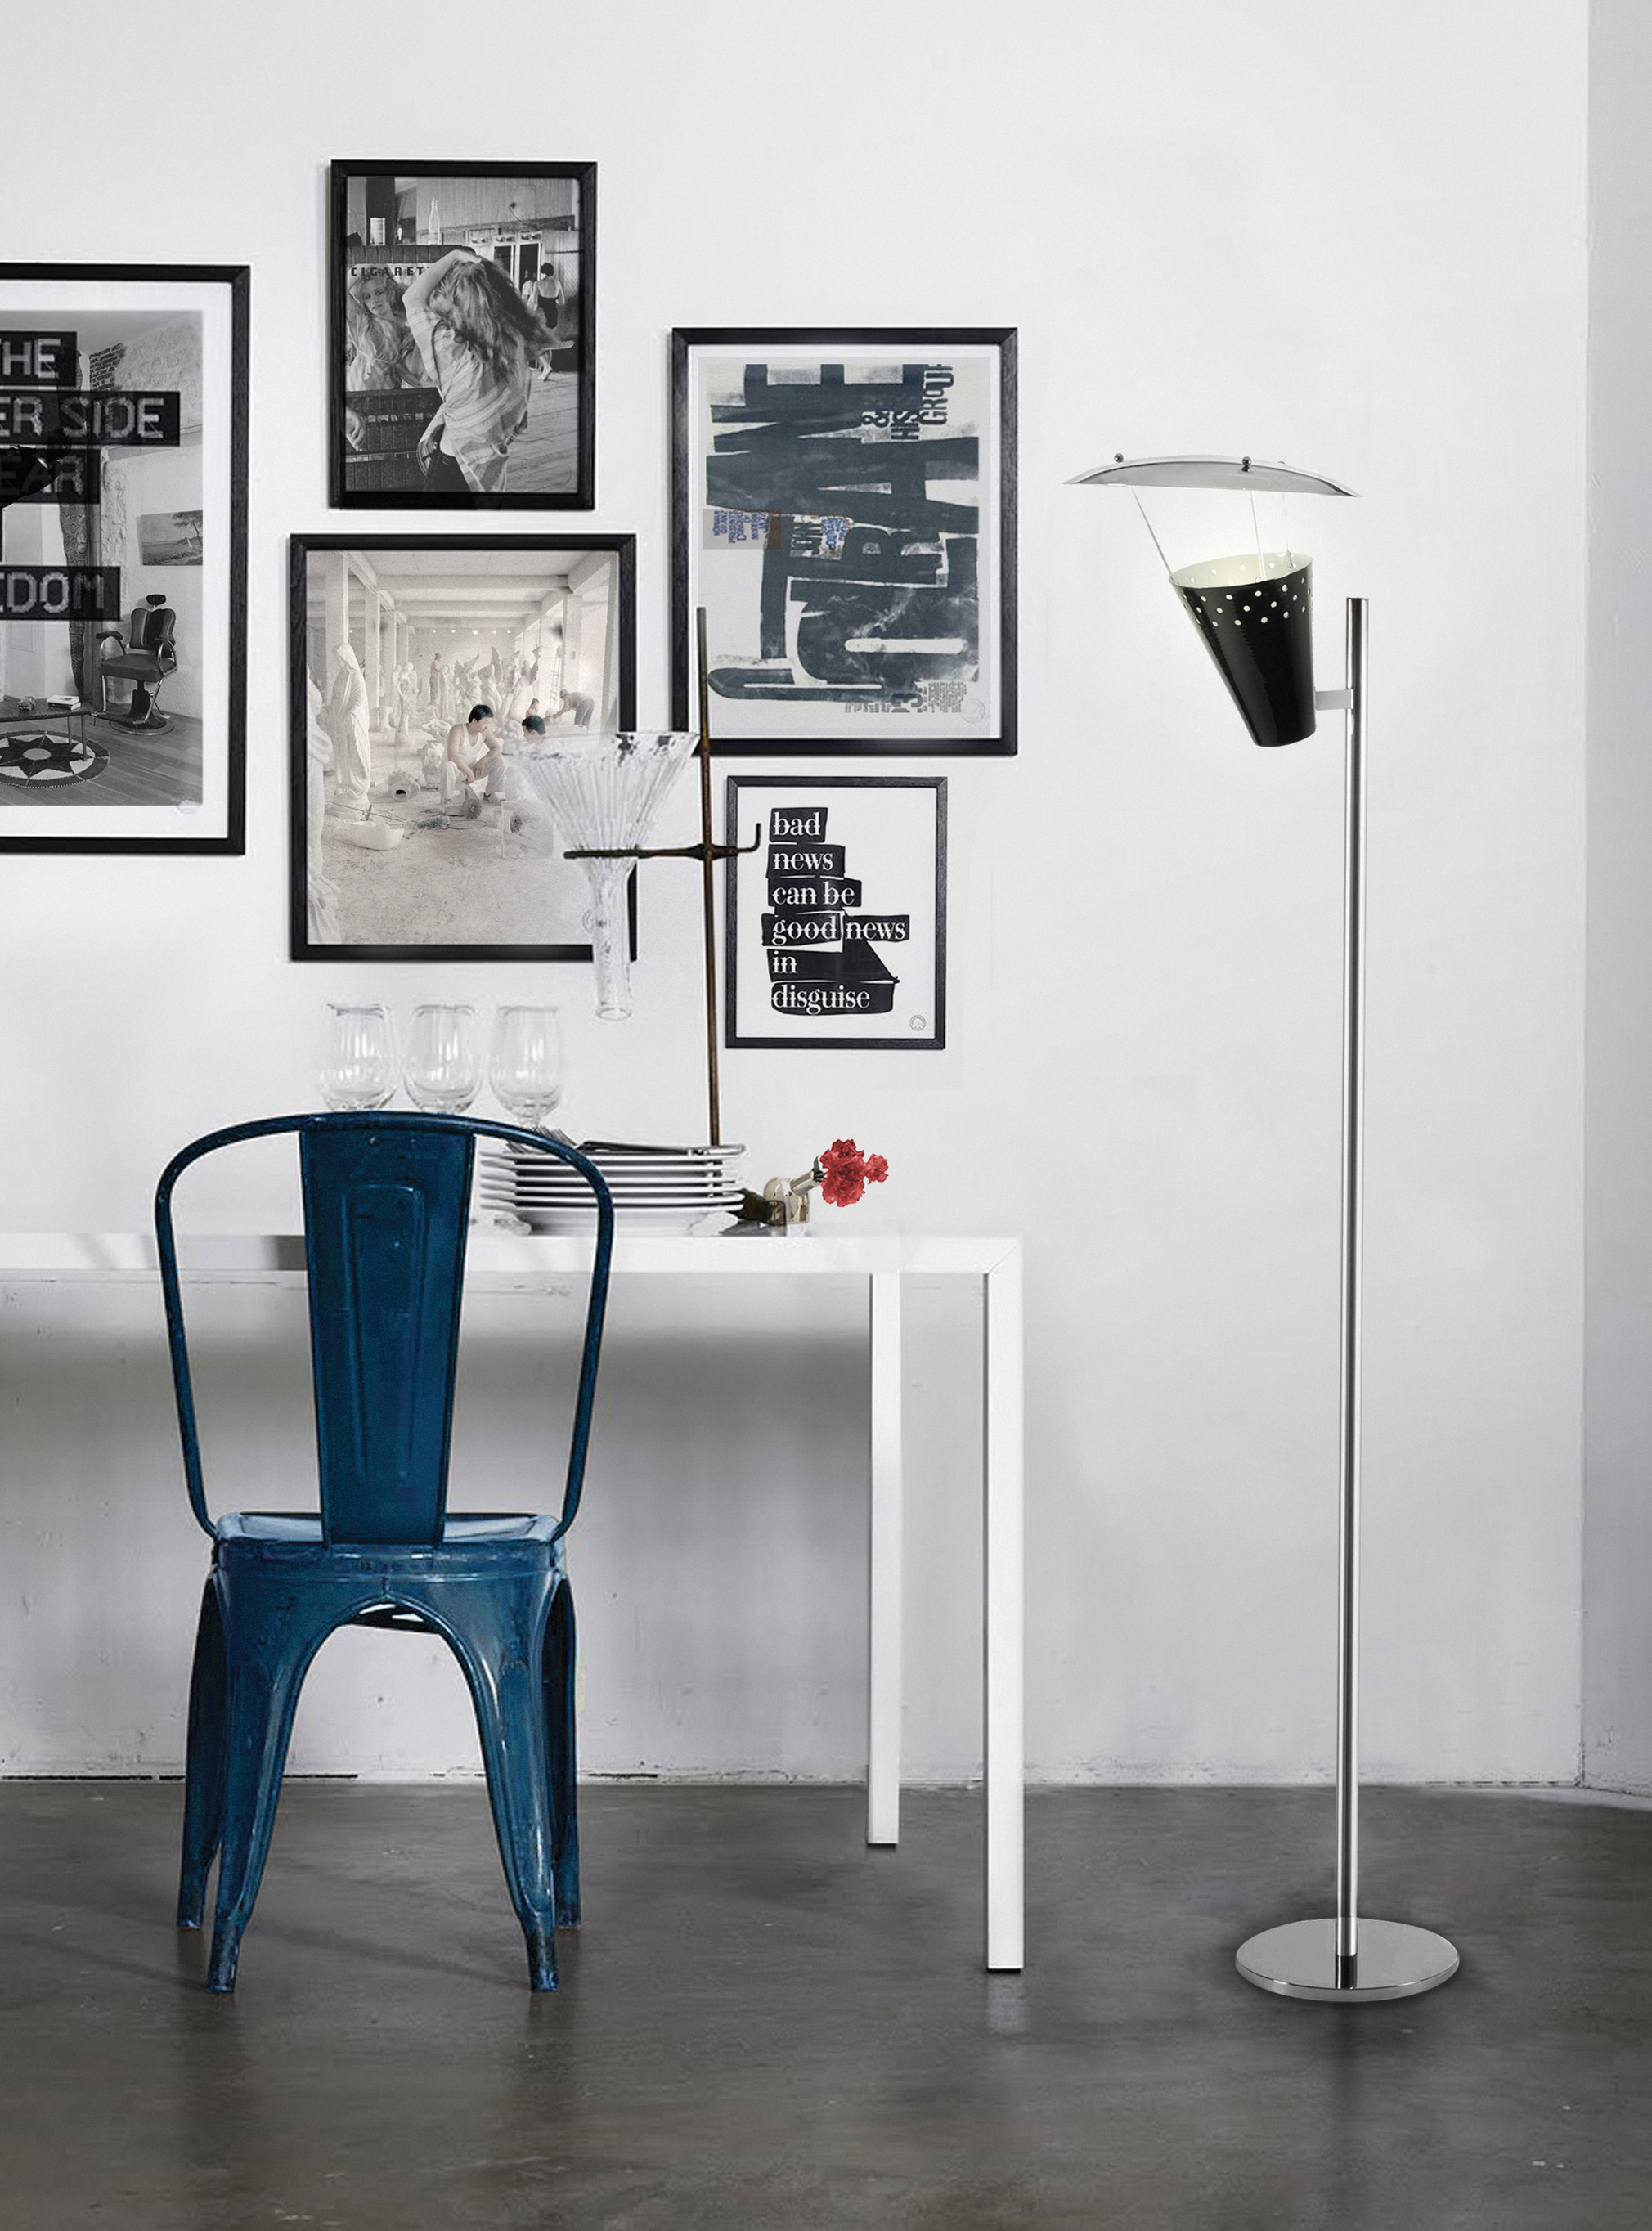 10 Dazzling Modern Floor Lamps You Will Want to Buy 2 modern floor lamps 10 Dazzling Modern Floor Lamps You Will Want to Buy 10 Dazzling Modern Floor Lamps You Will Want to Buy 4